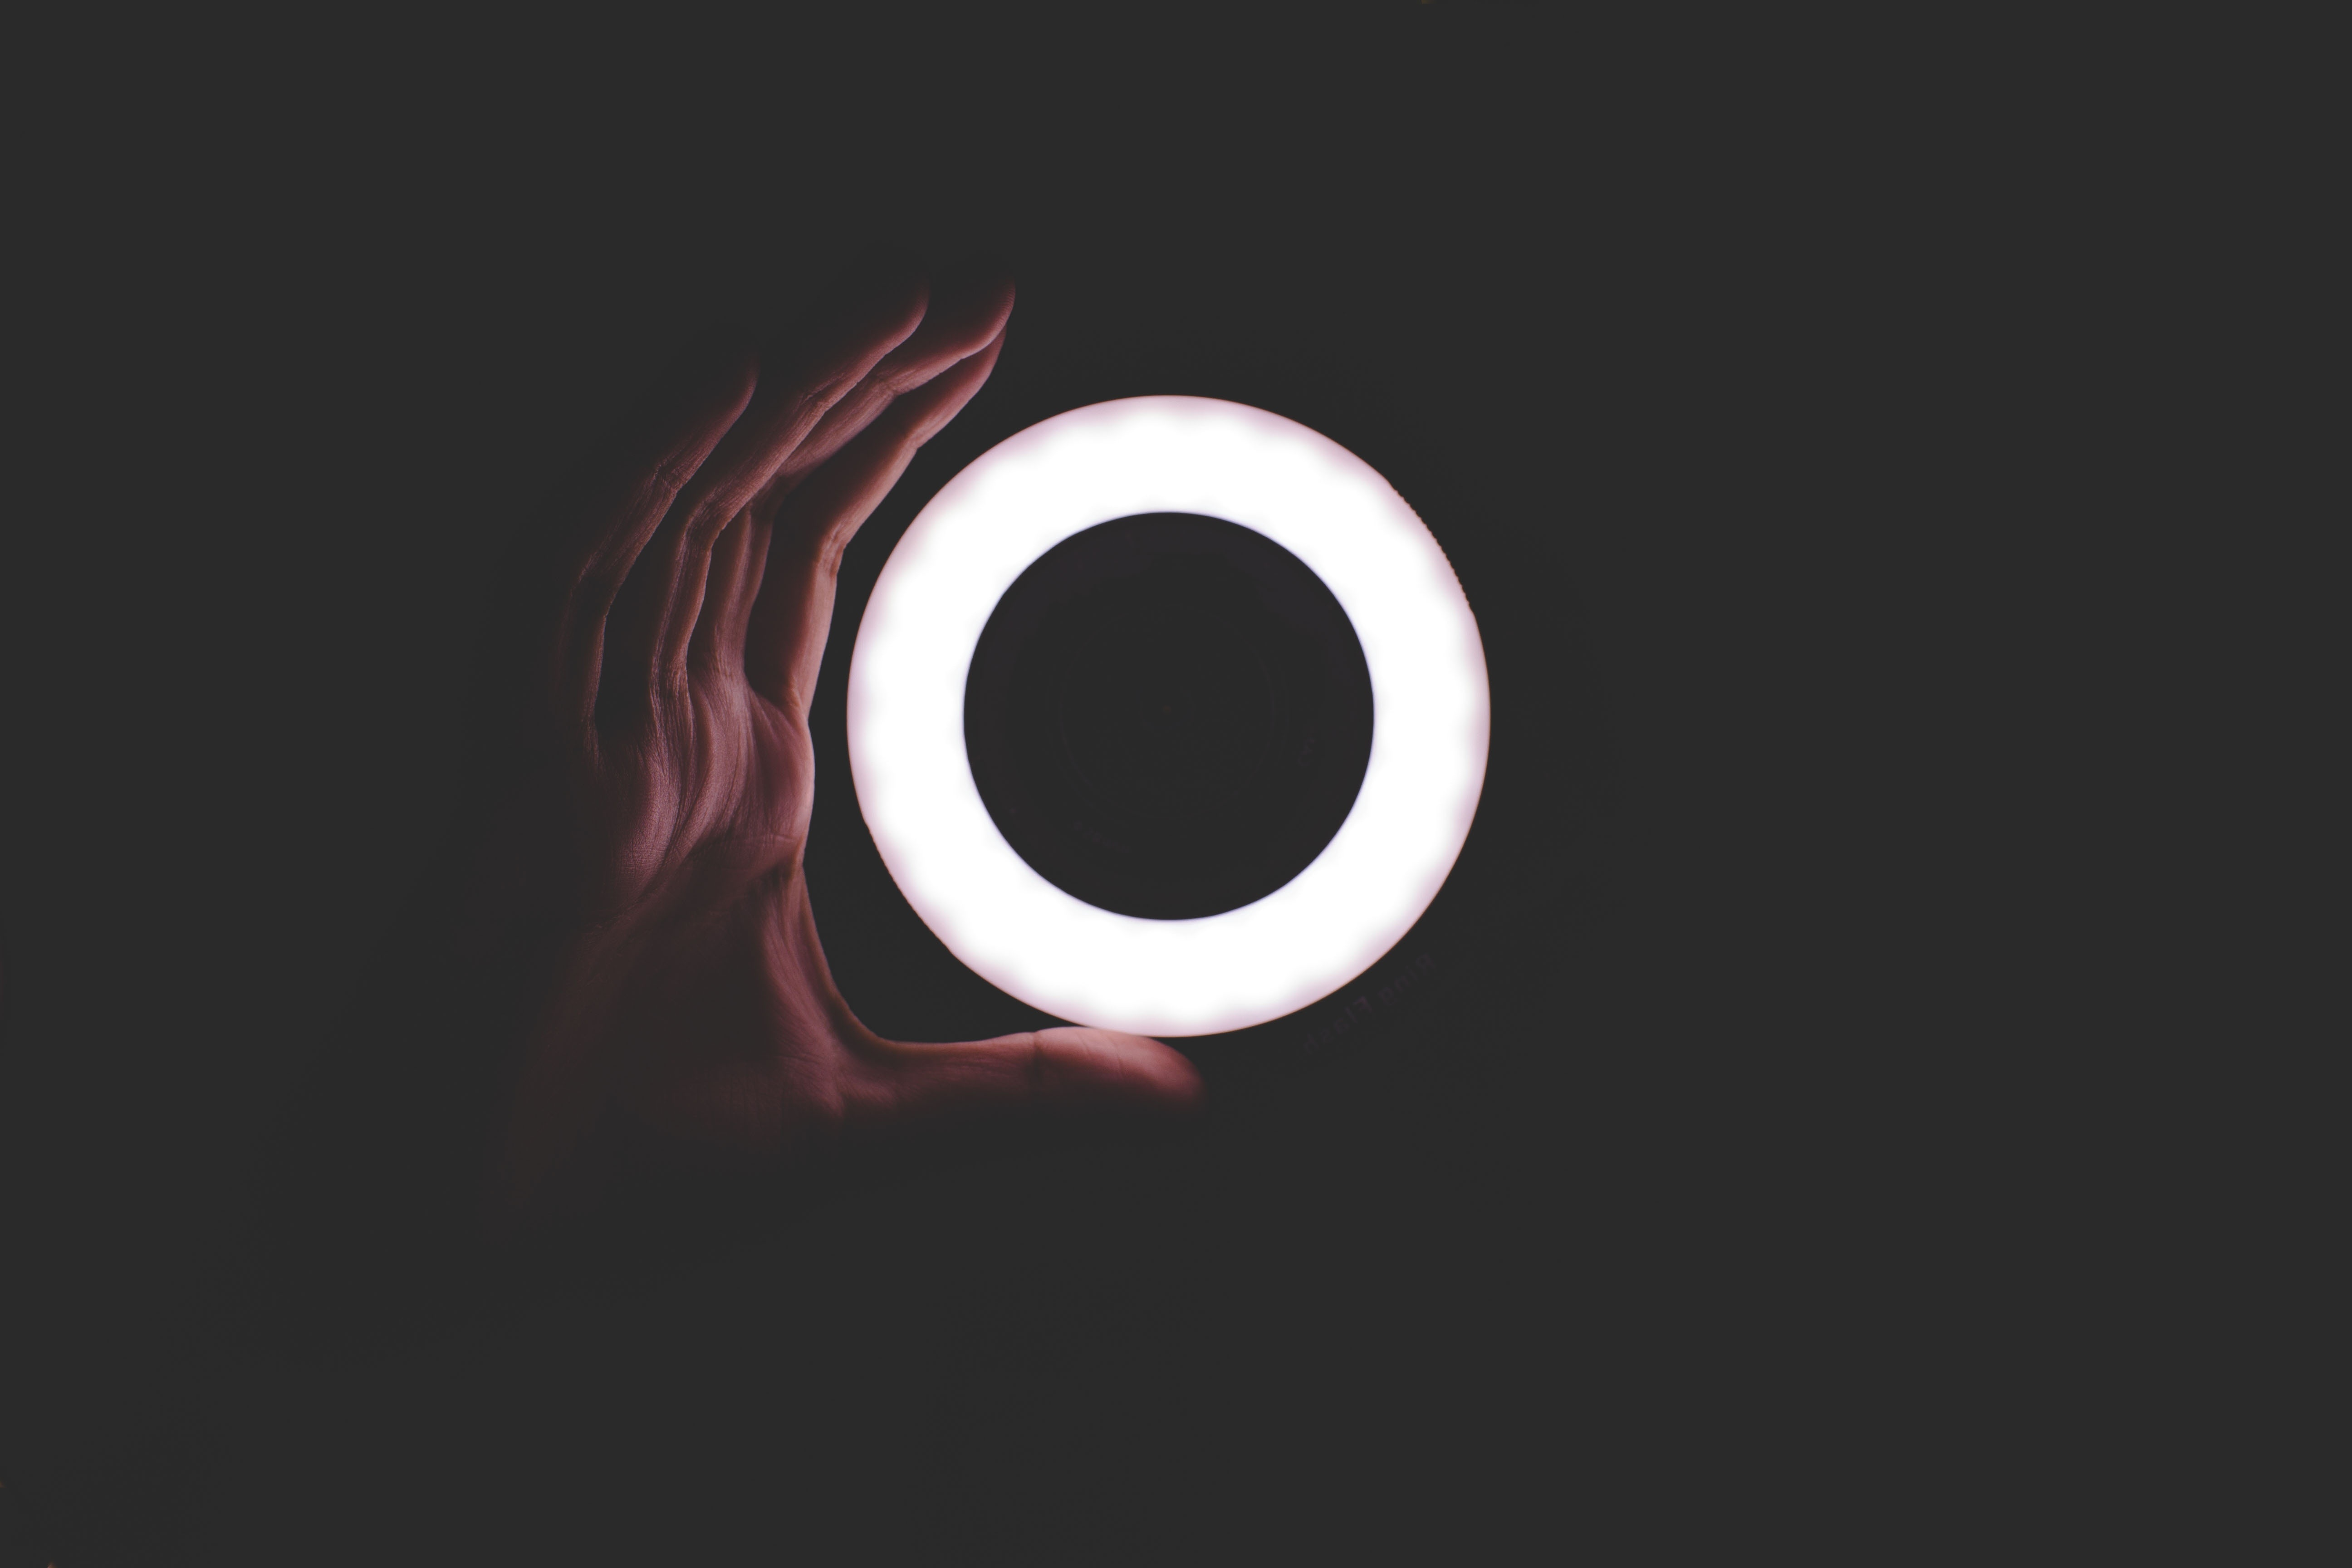 Hand holding a circle of light with dark background